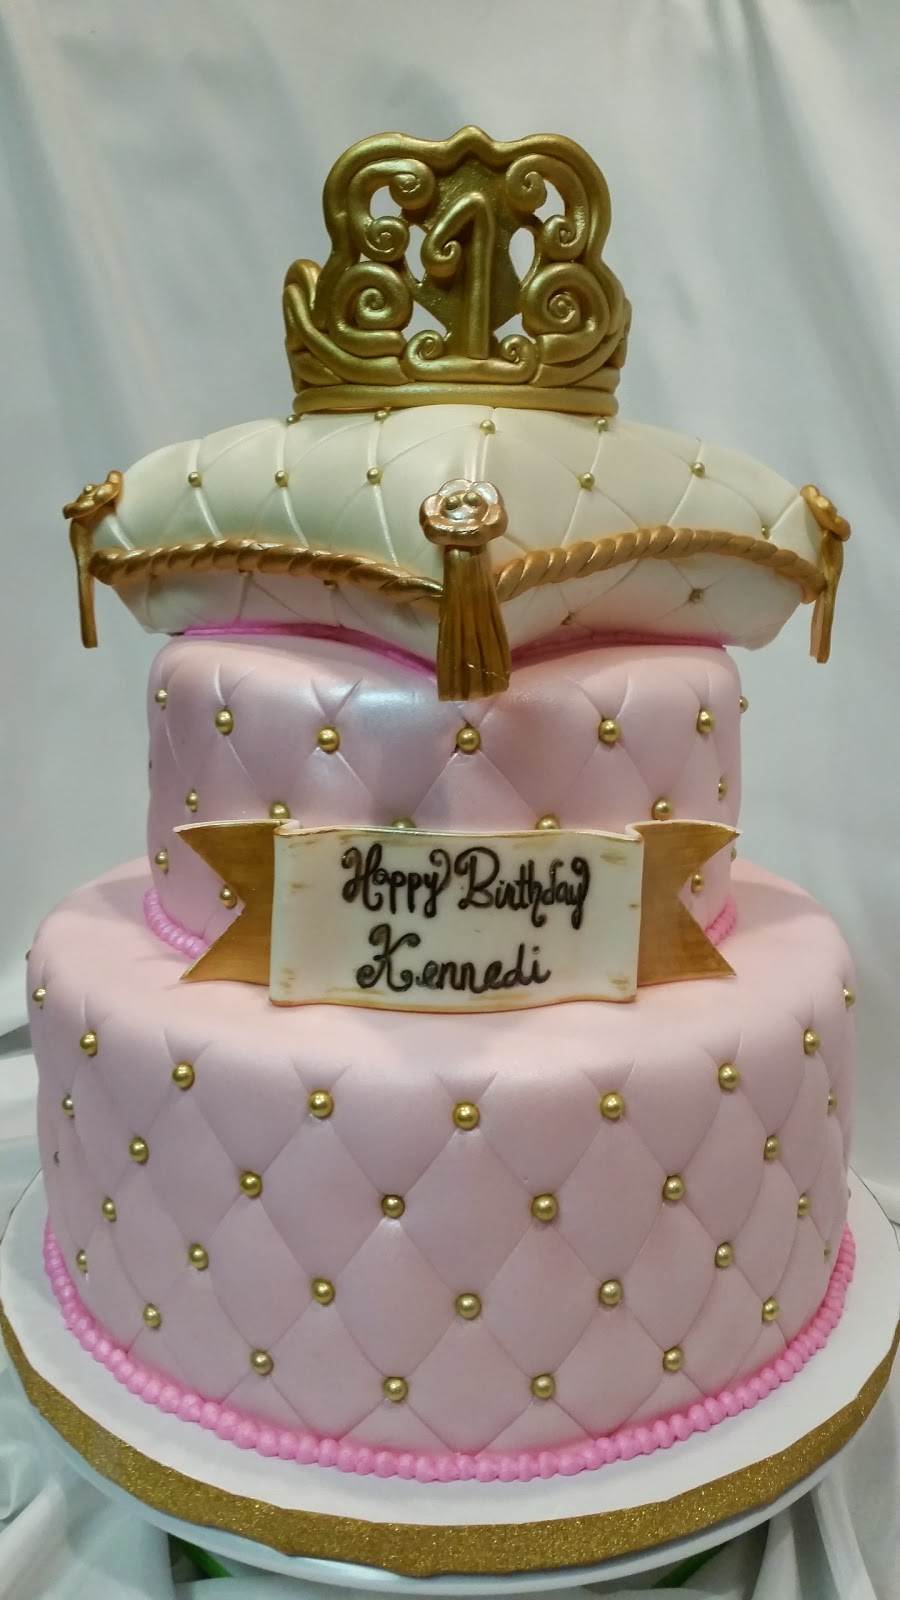 Princess Pillow Cake Images : MyMoniCakes: Princess pillow cake with gum paste tiara and ...